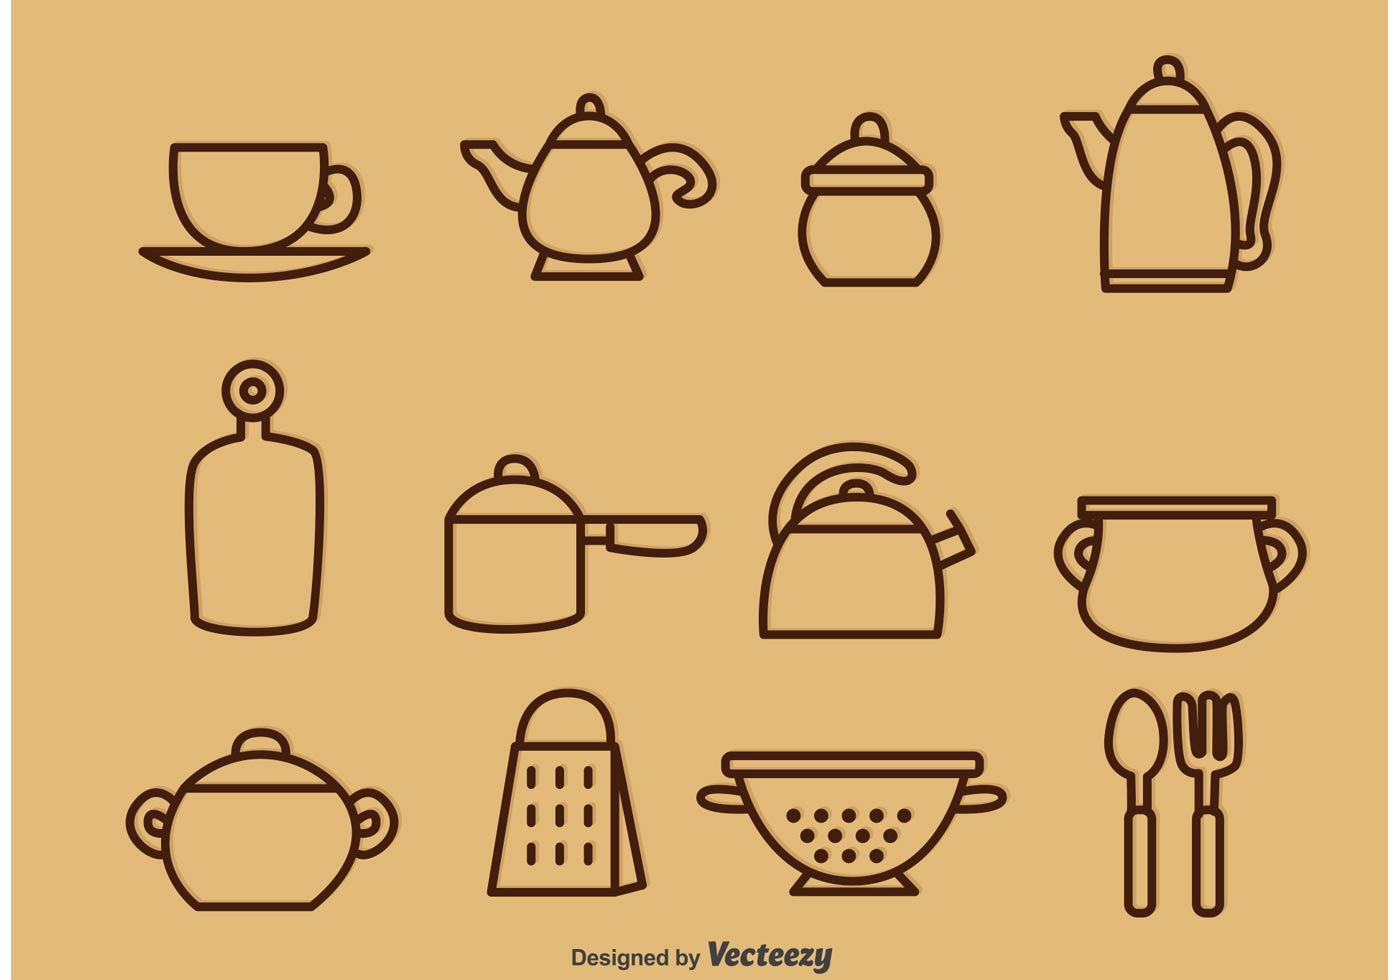 Outlined Vintage Kitchen Utensil Vector Icons   Download Free Vector Art,  Stock Graphics U0026 Images